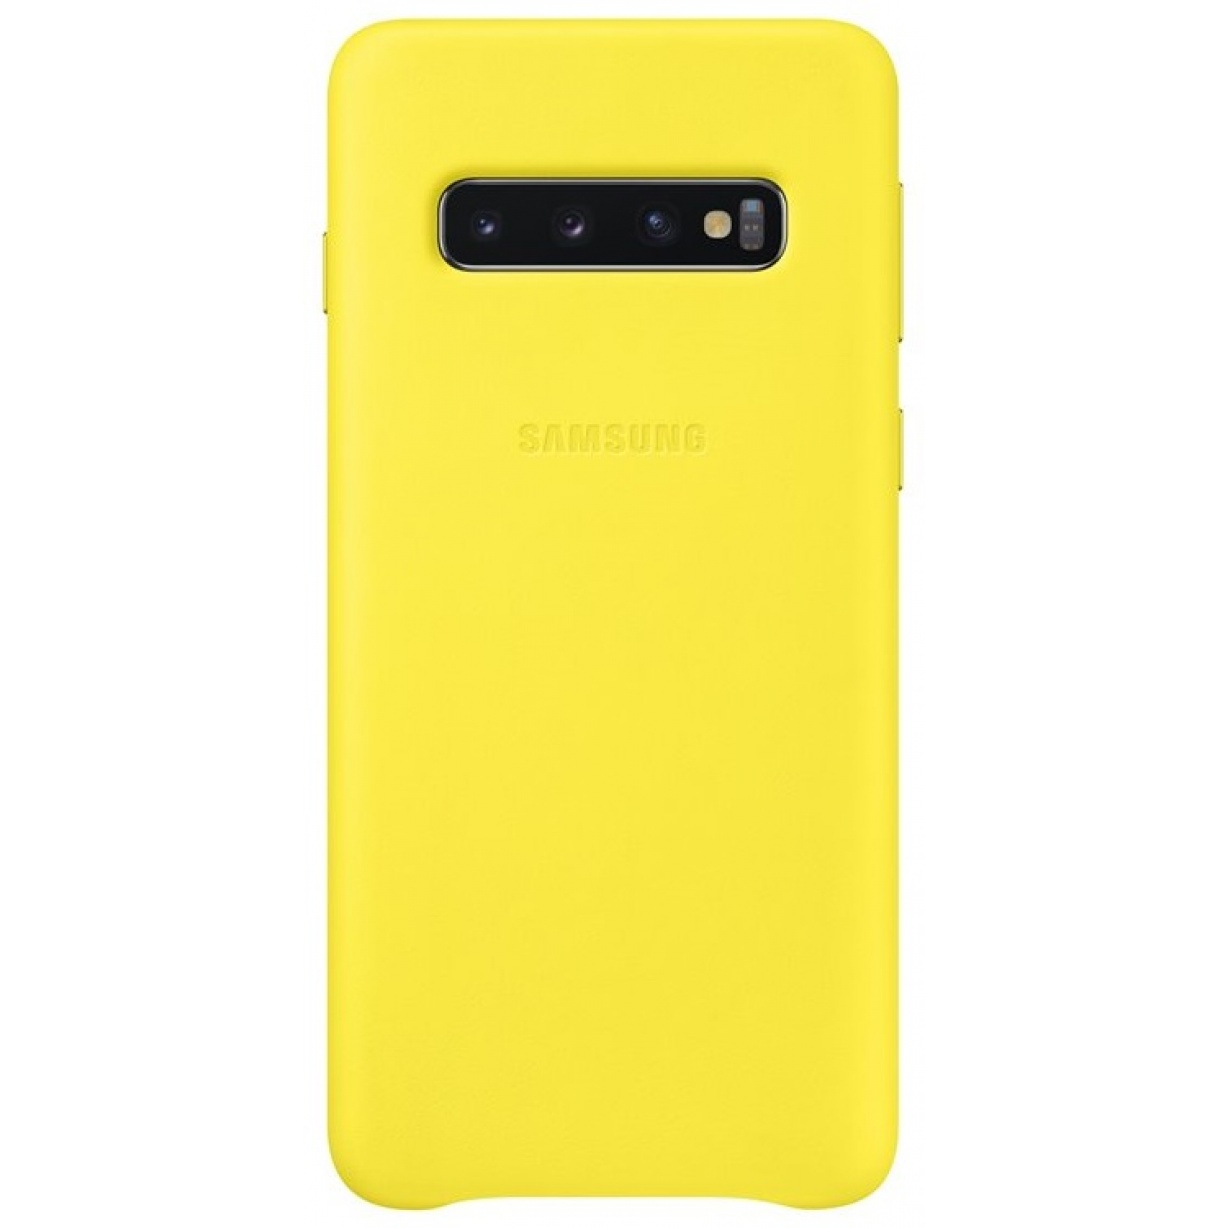 Nugarėlė G973 Samsung Galaxy S10 Leather Cover Yellow